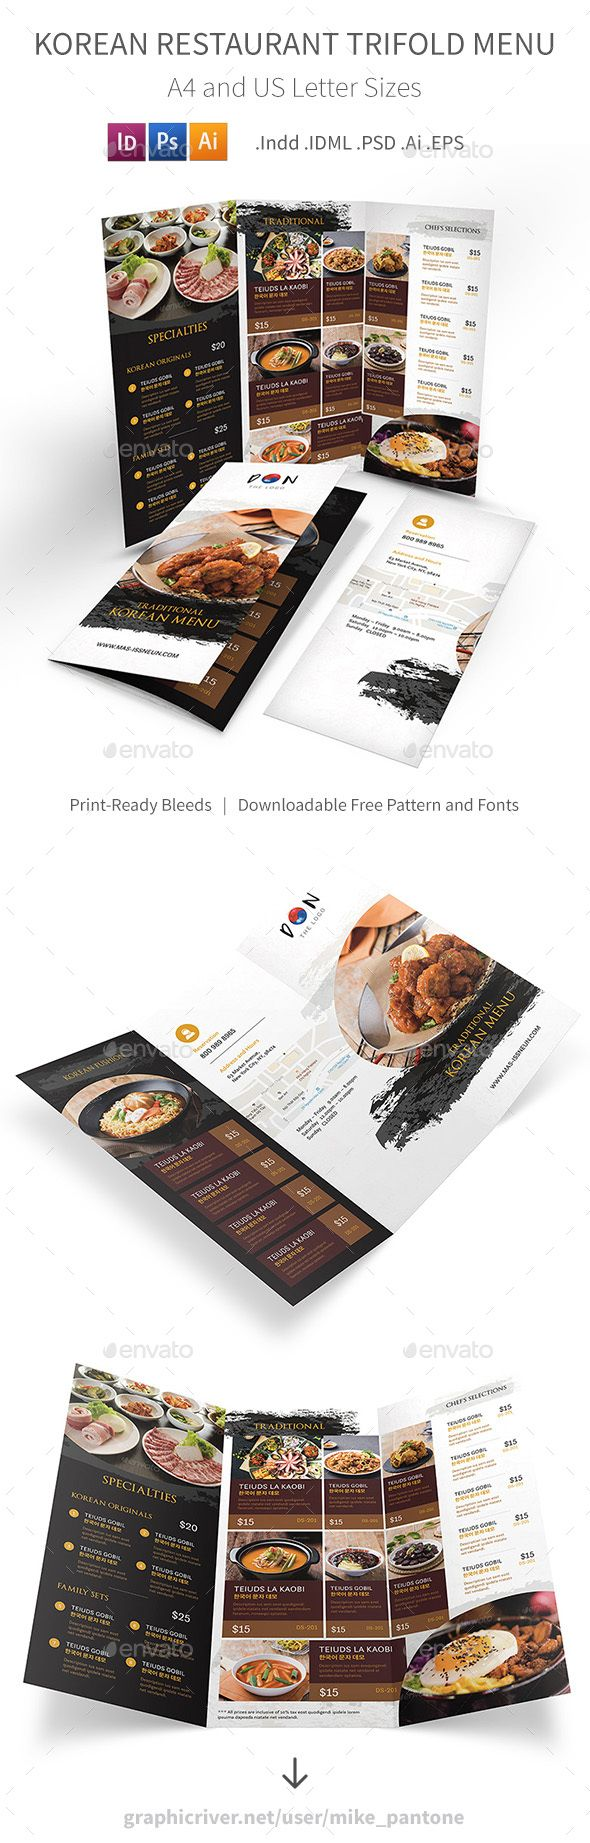 Korean Restaurant Trifold Menu 2 — Photoshop PSD #mike #brochure • Download ➝ https://graphicriver.net/item/korean-restaurant-trifold-menu-2/19250798?ref=pxcr